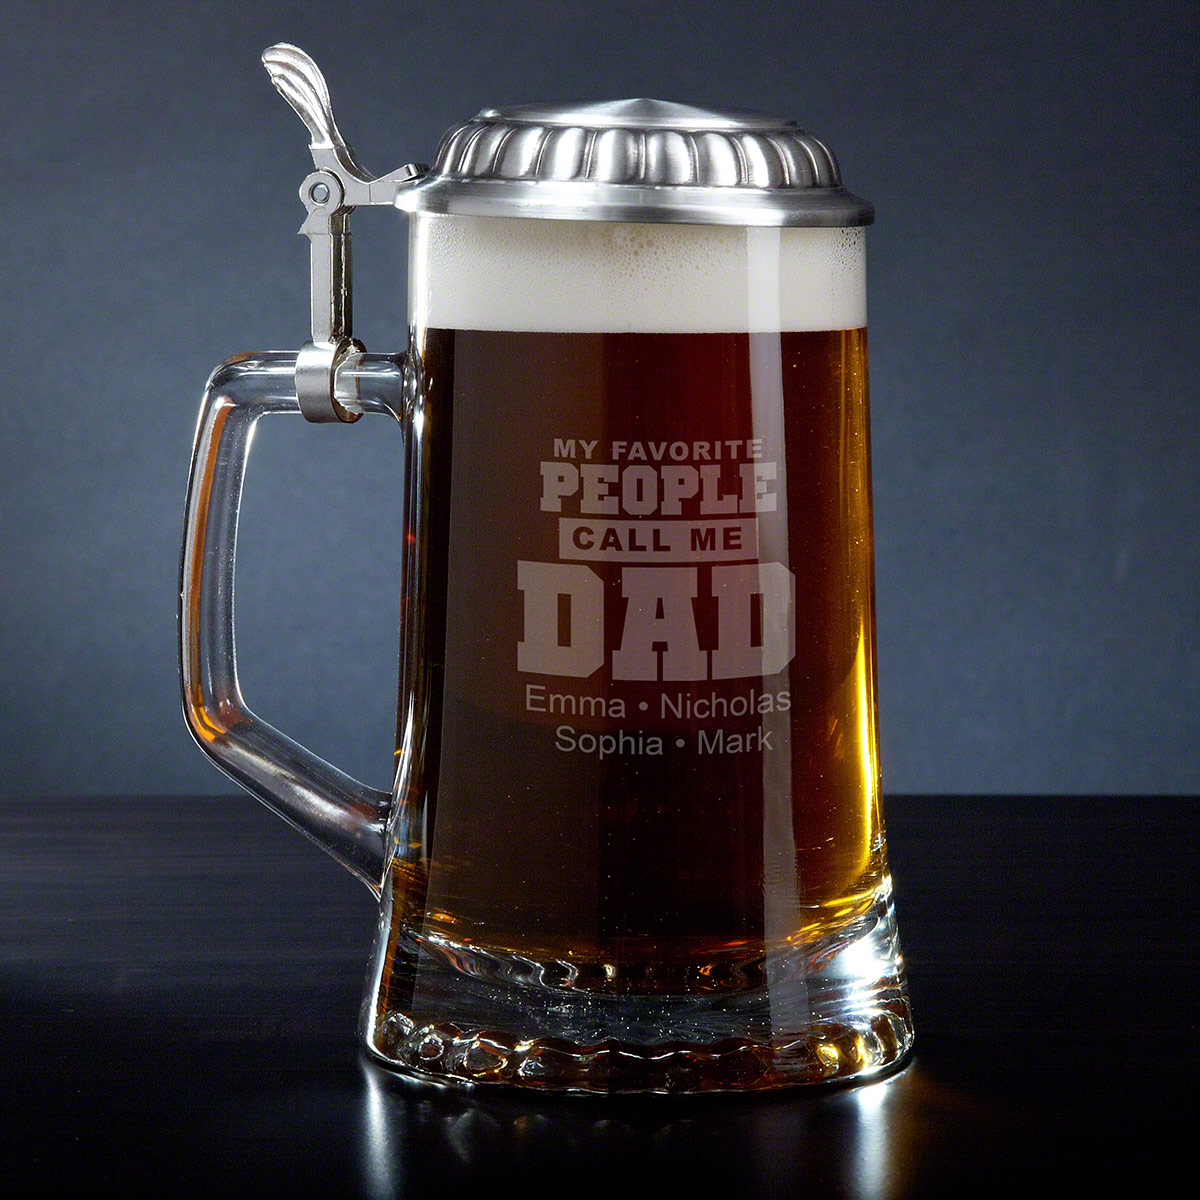 No matter your age, job, or education, most guys' would still say their favorite name is Dad. Let your father indulge in this love everytime he drinks a beer with our Call Me Dad personalized beer mug. Faithfully crafted from Italian glass, with a traditi #mug